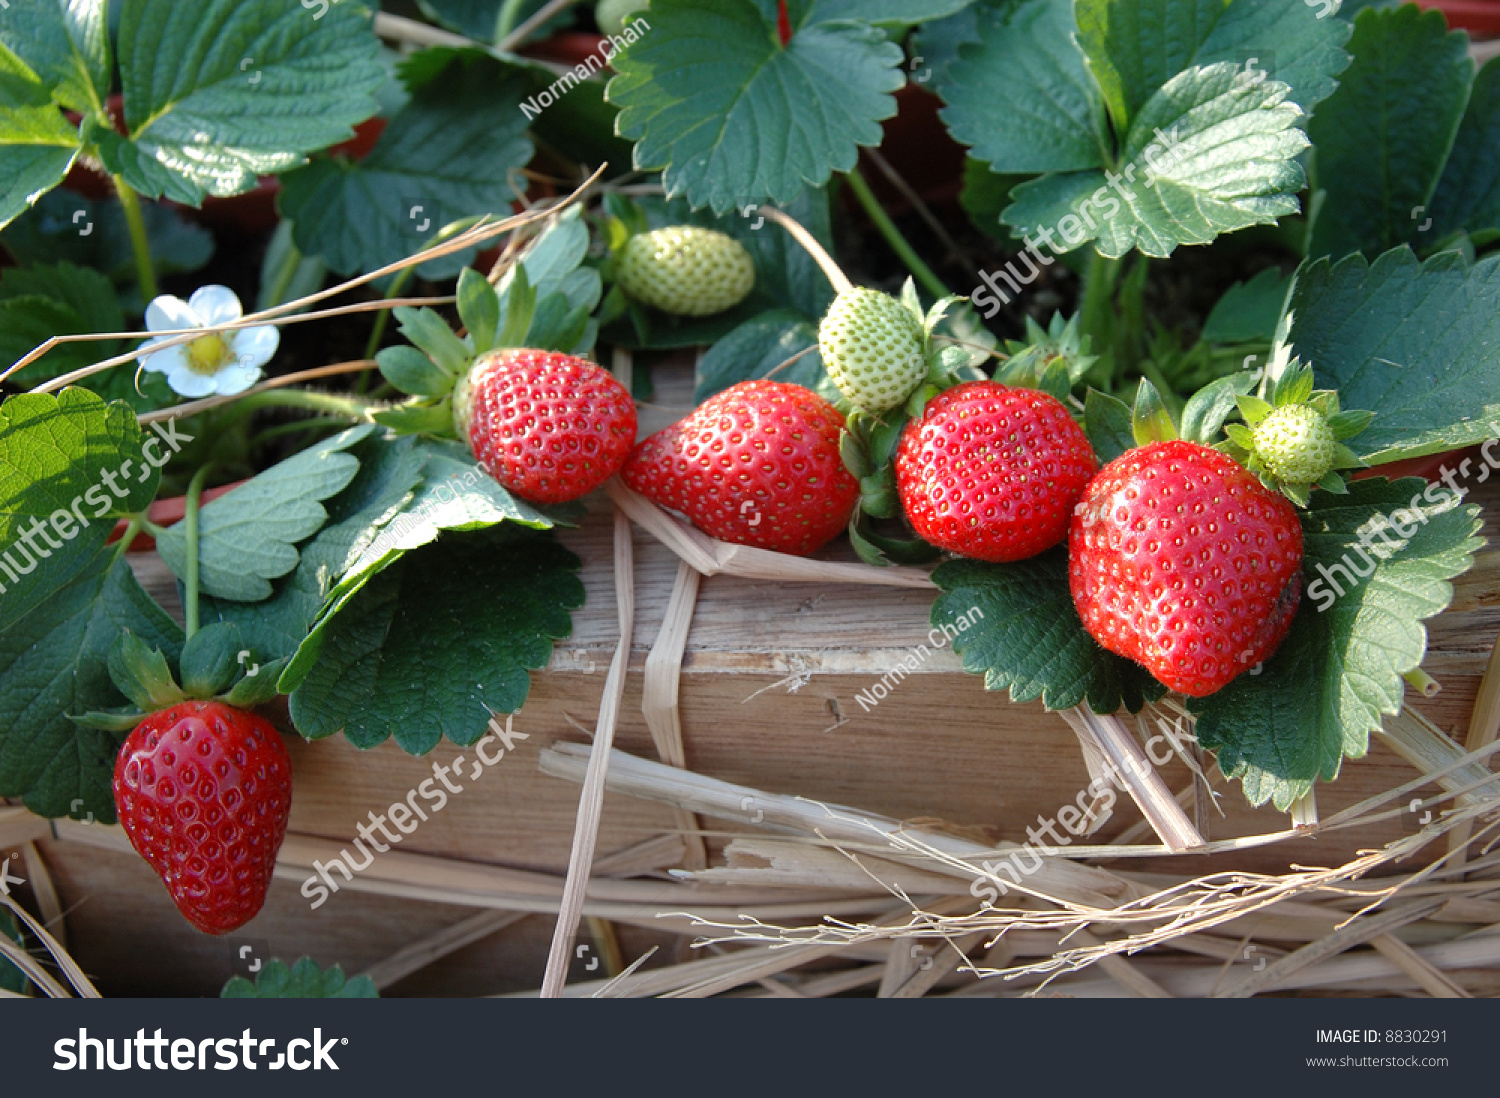 Strawberry Plants Garden Green Leaves Stock Photo 8830291 ...